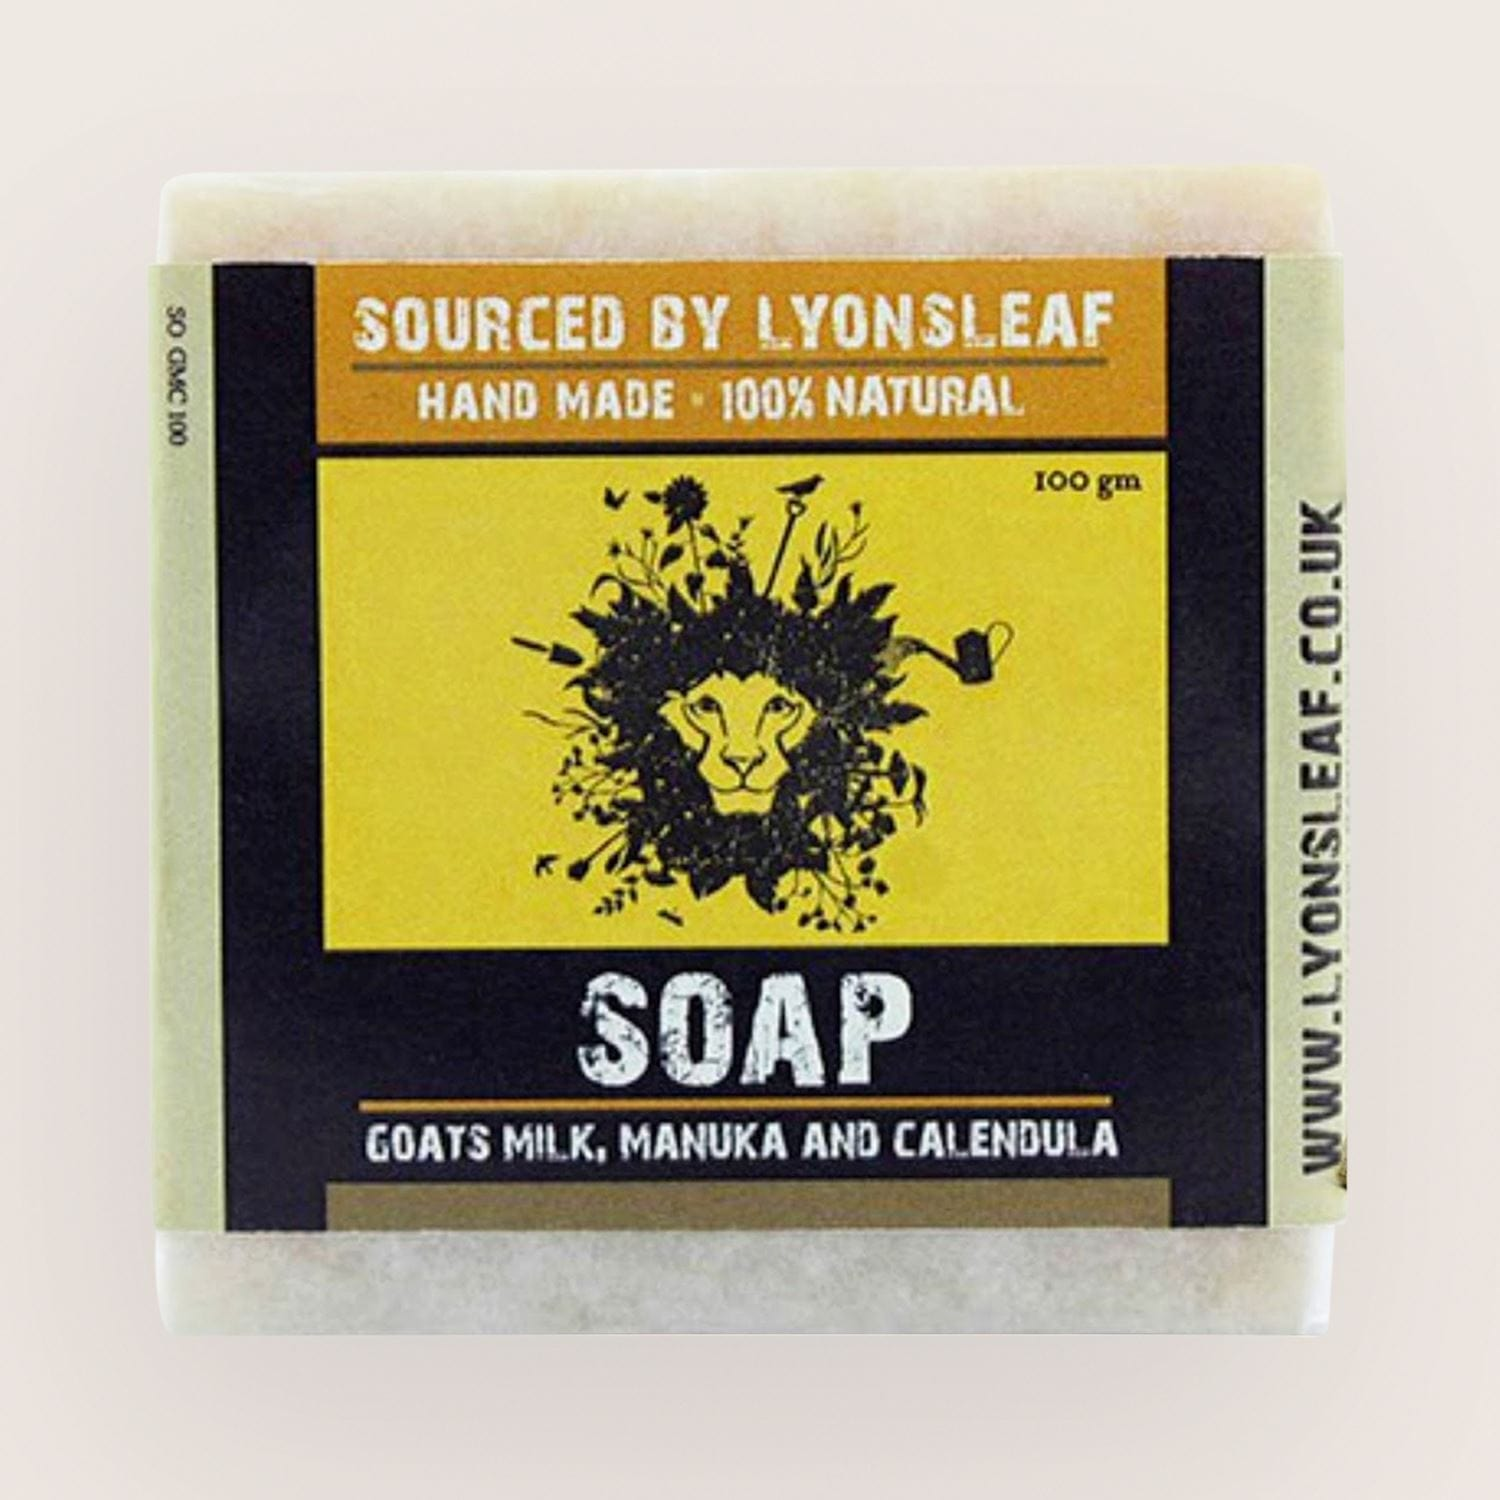 Lyonsleaf Natural Calendula Soap 100g